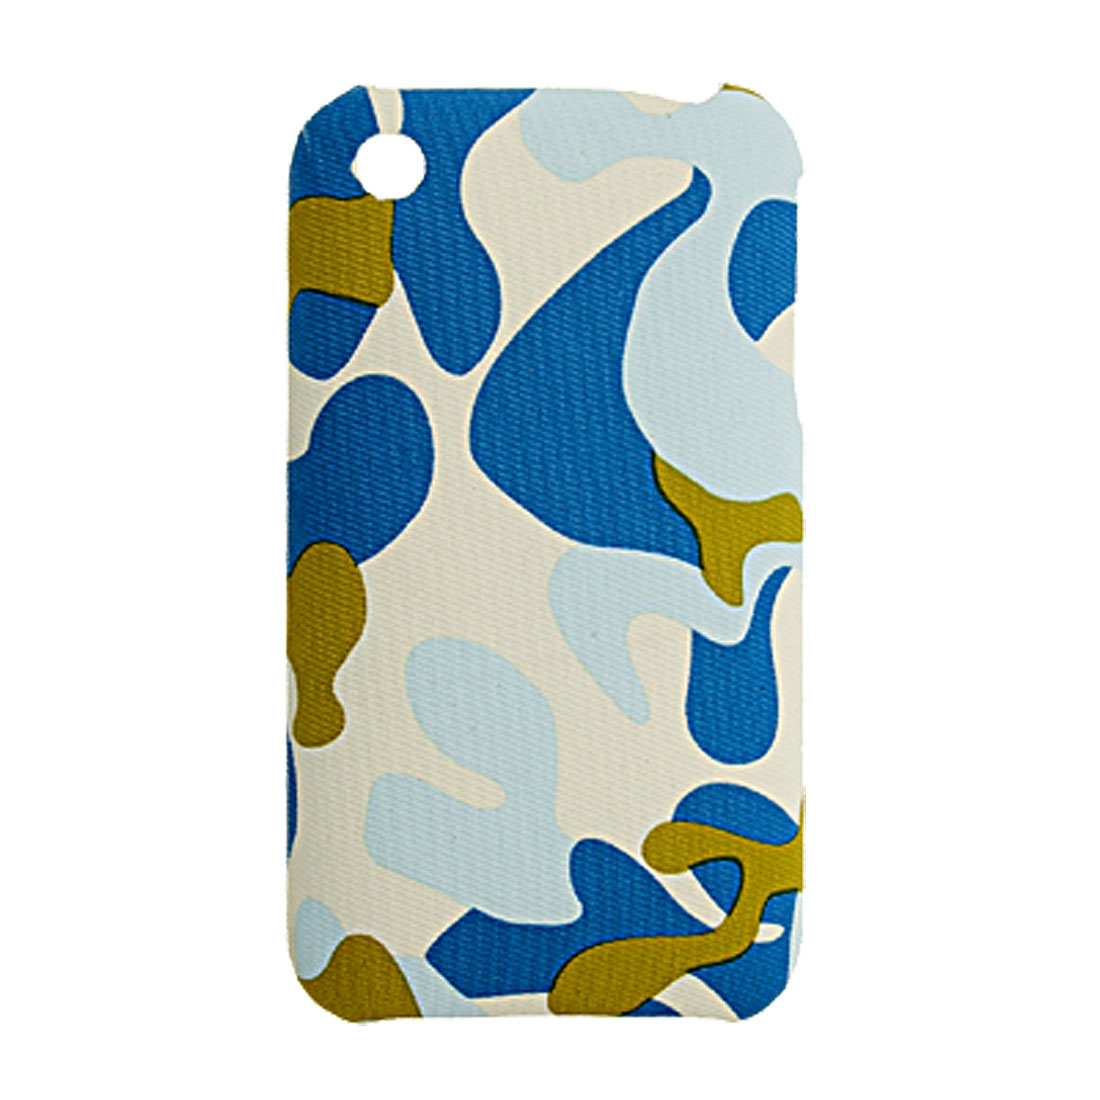 Nonskid Camouflage Coated Plastic Back Shell Case for iPhone 3G